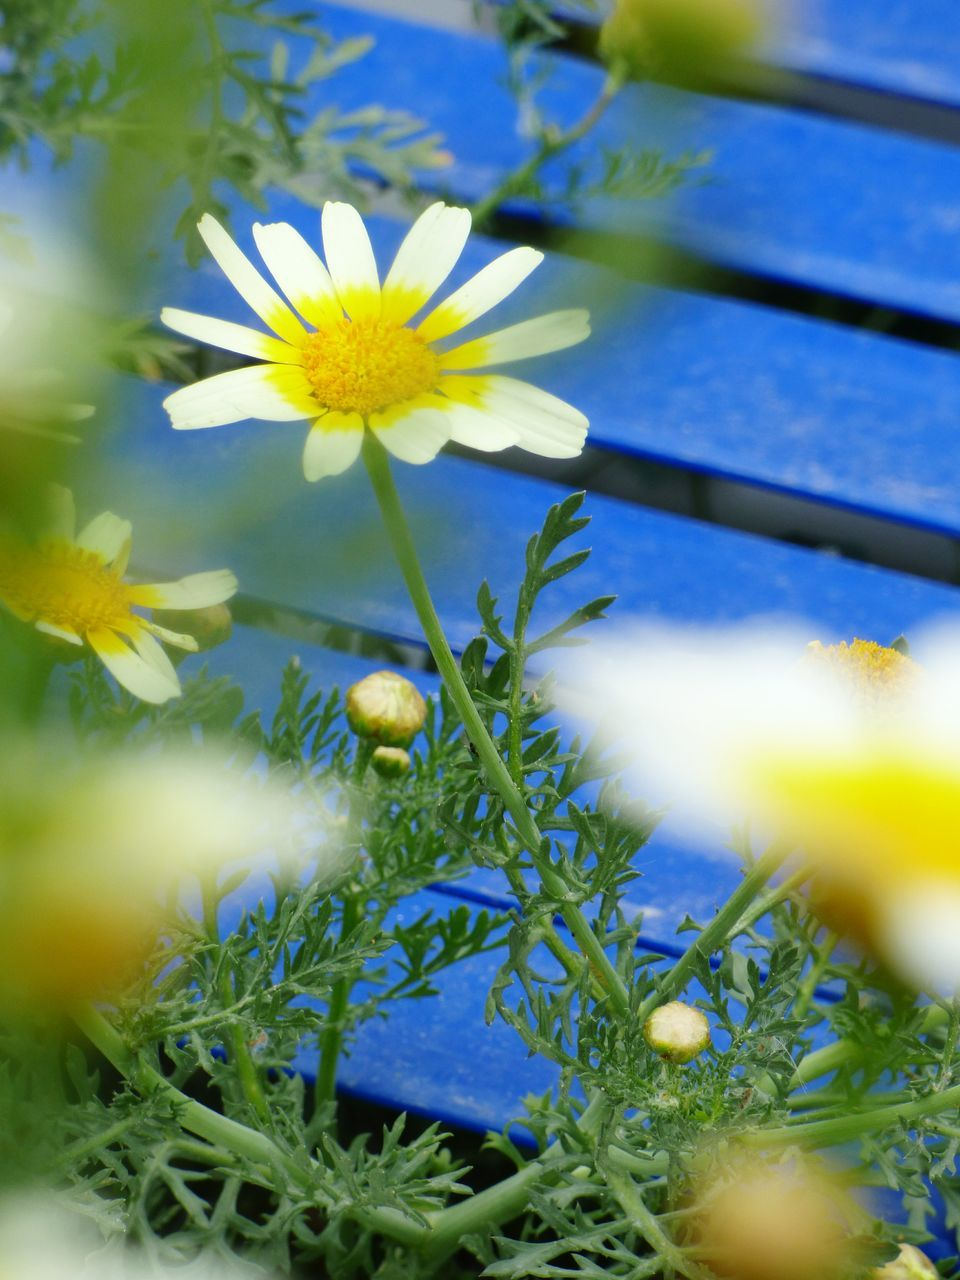 flower, growth, nature, beauty in nature, petal, yellow, fragility, freshness, plant, blooming, no people, flower head, close-up, outdoors, day